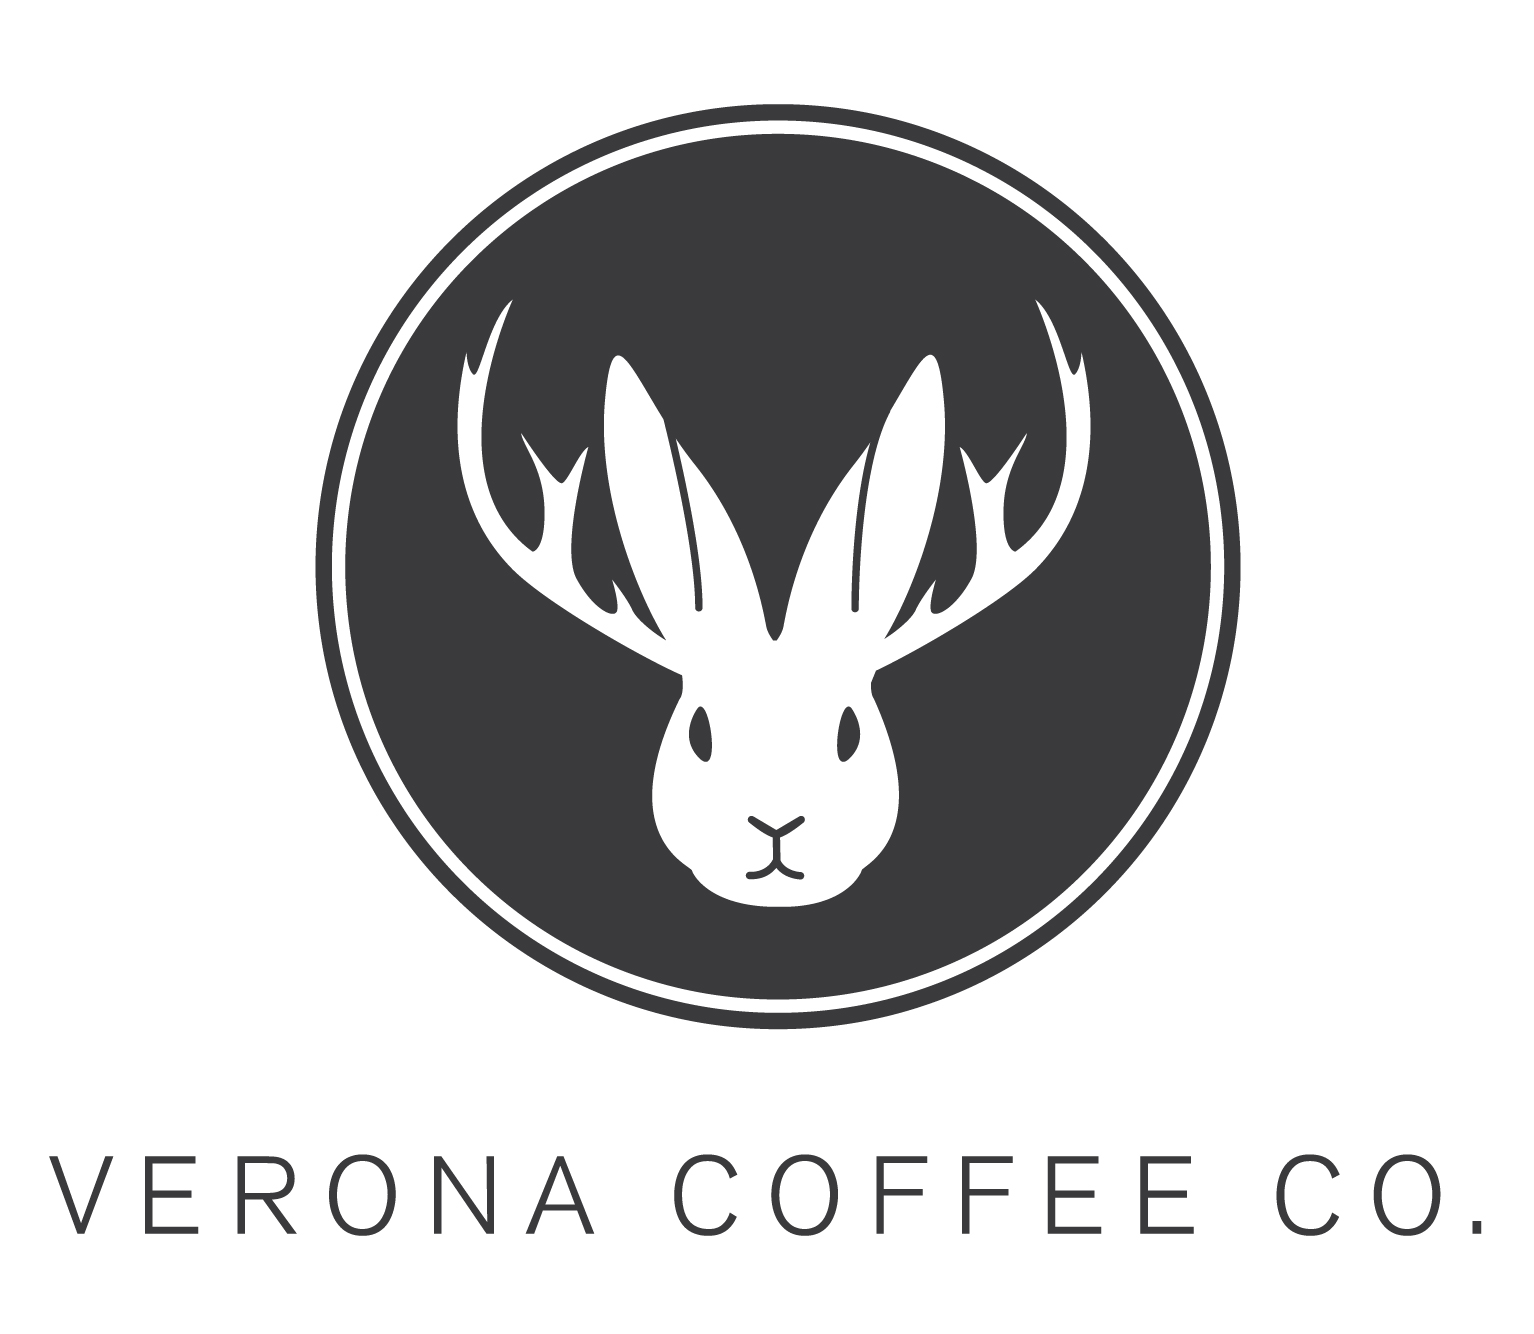 Verona Coffee Co.  logo